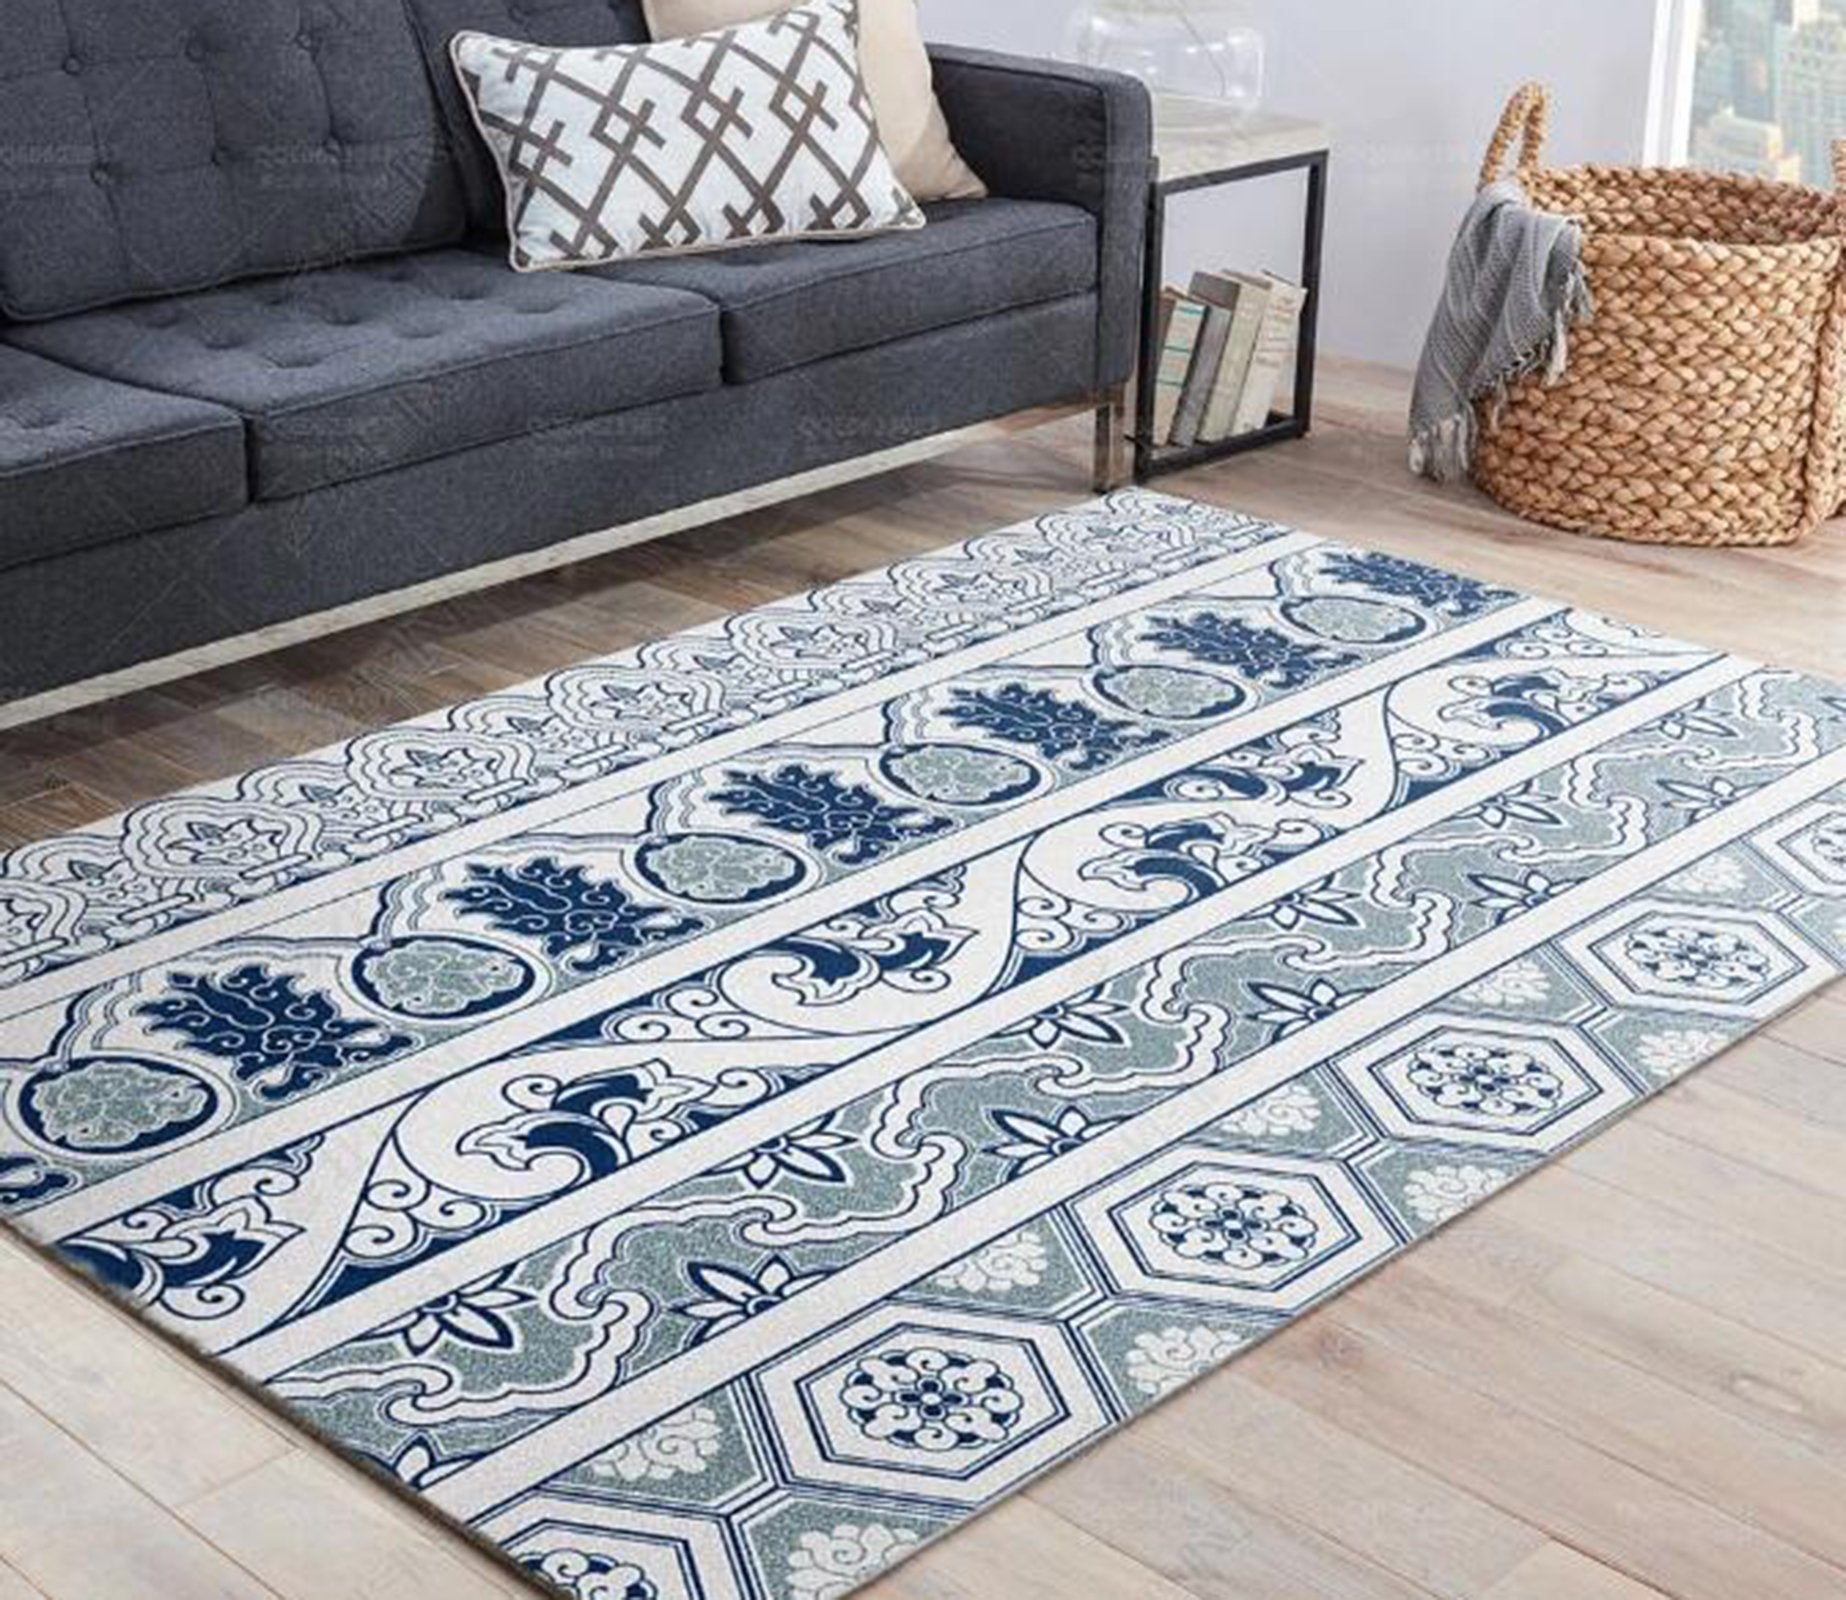 3D Color Geometry WG575 Non Slip Rug Mat